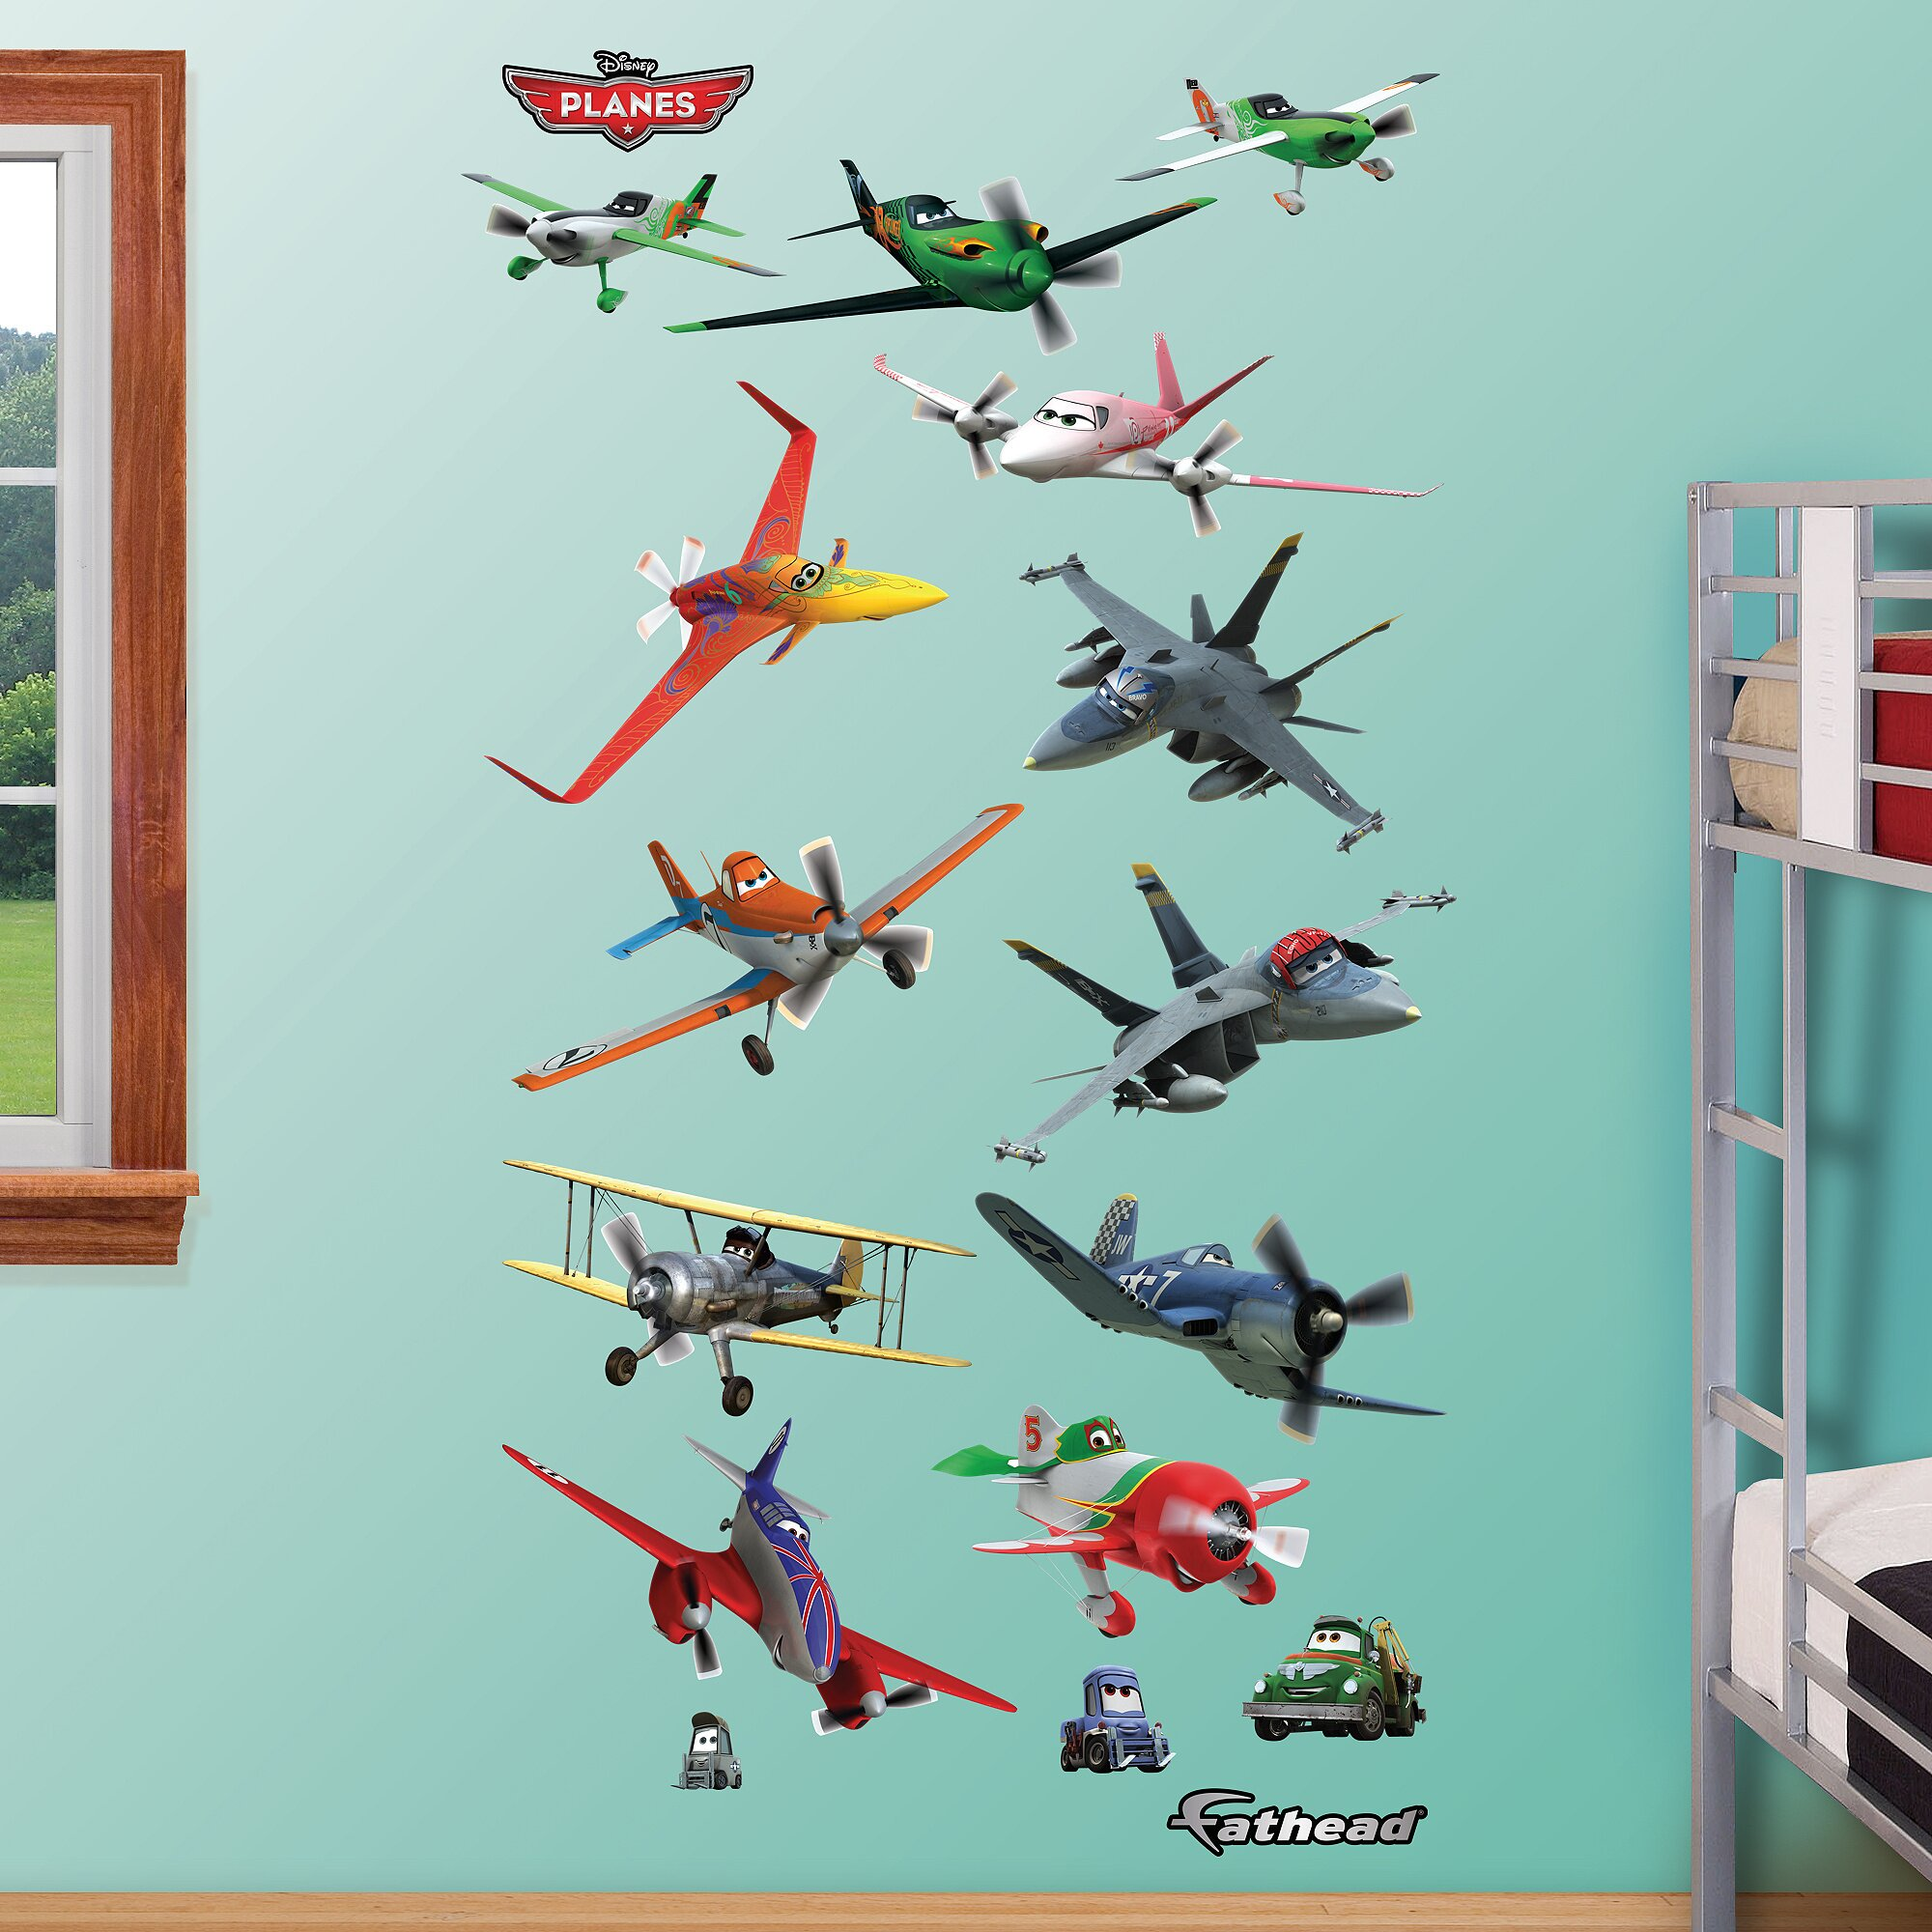 Aeroplane wall decals wall murals ideas fathead disney planes wall decal reviews amipublicfo Image collections